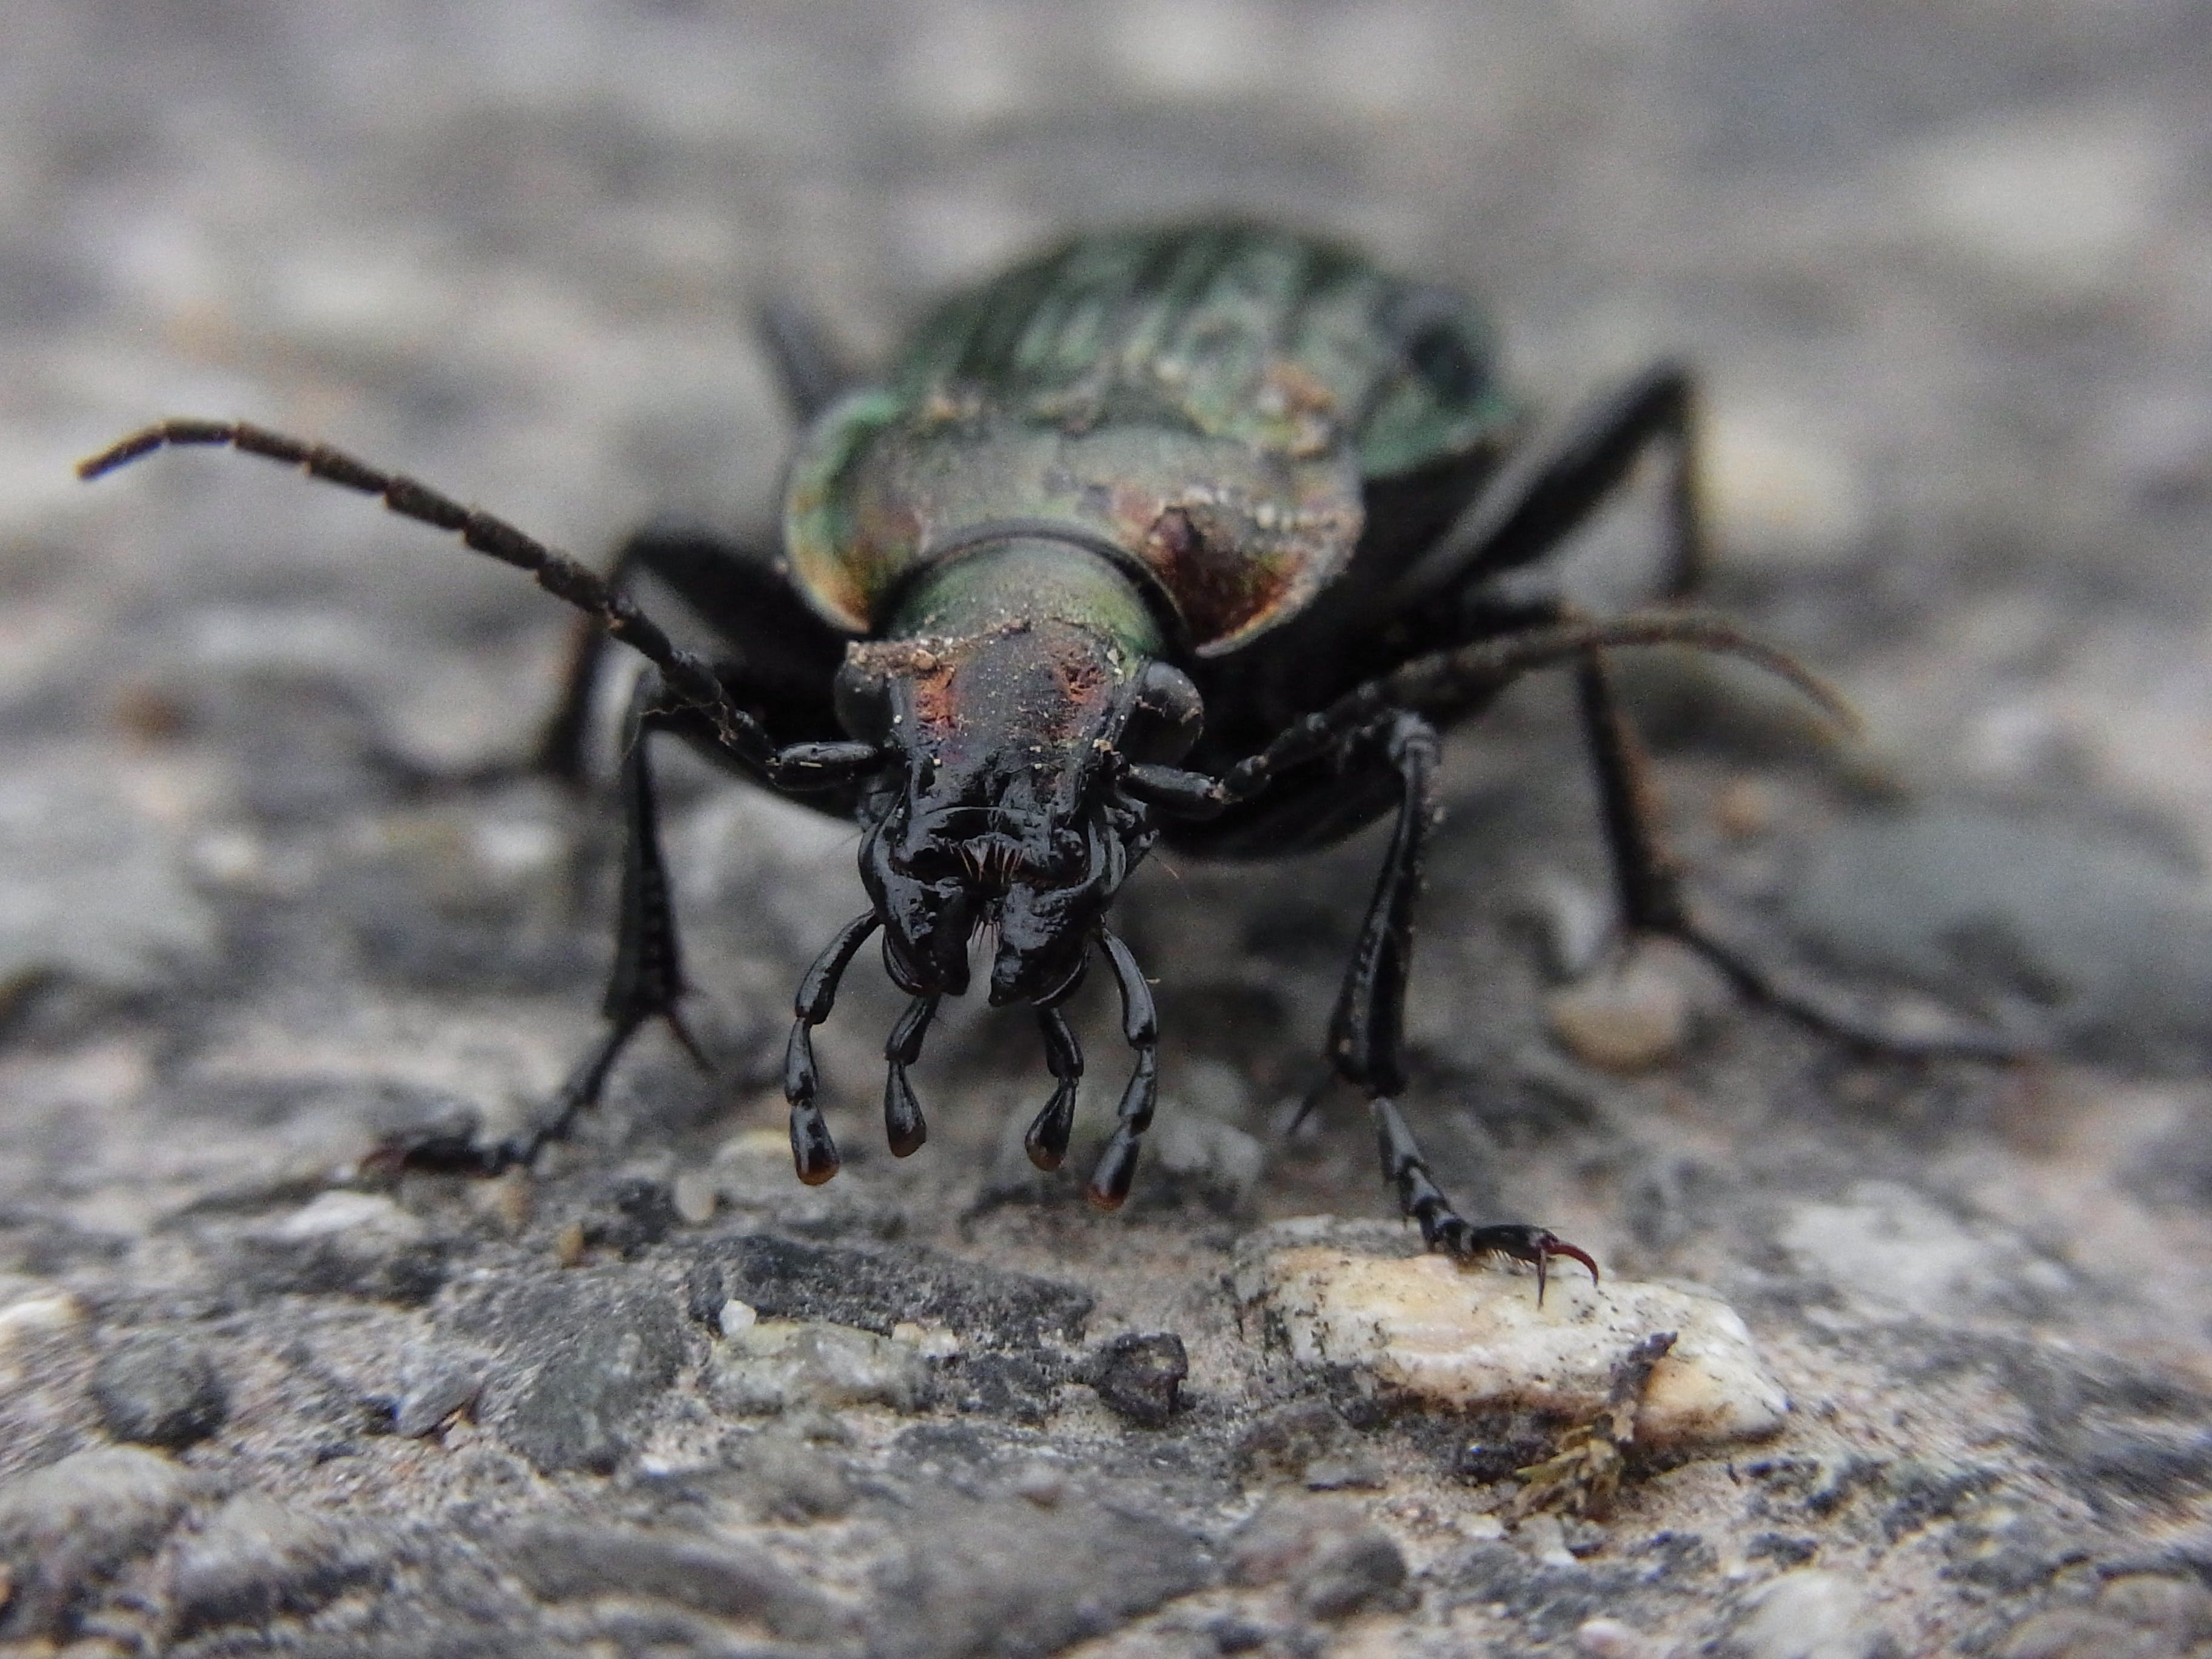 Black and Green Beetle